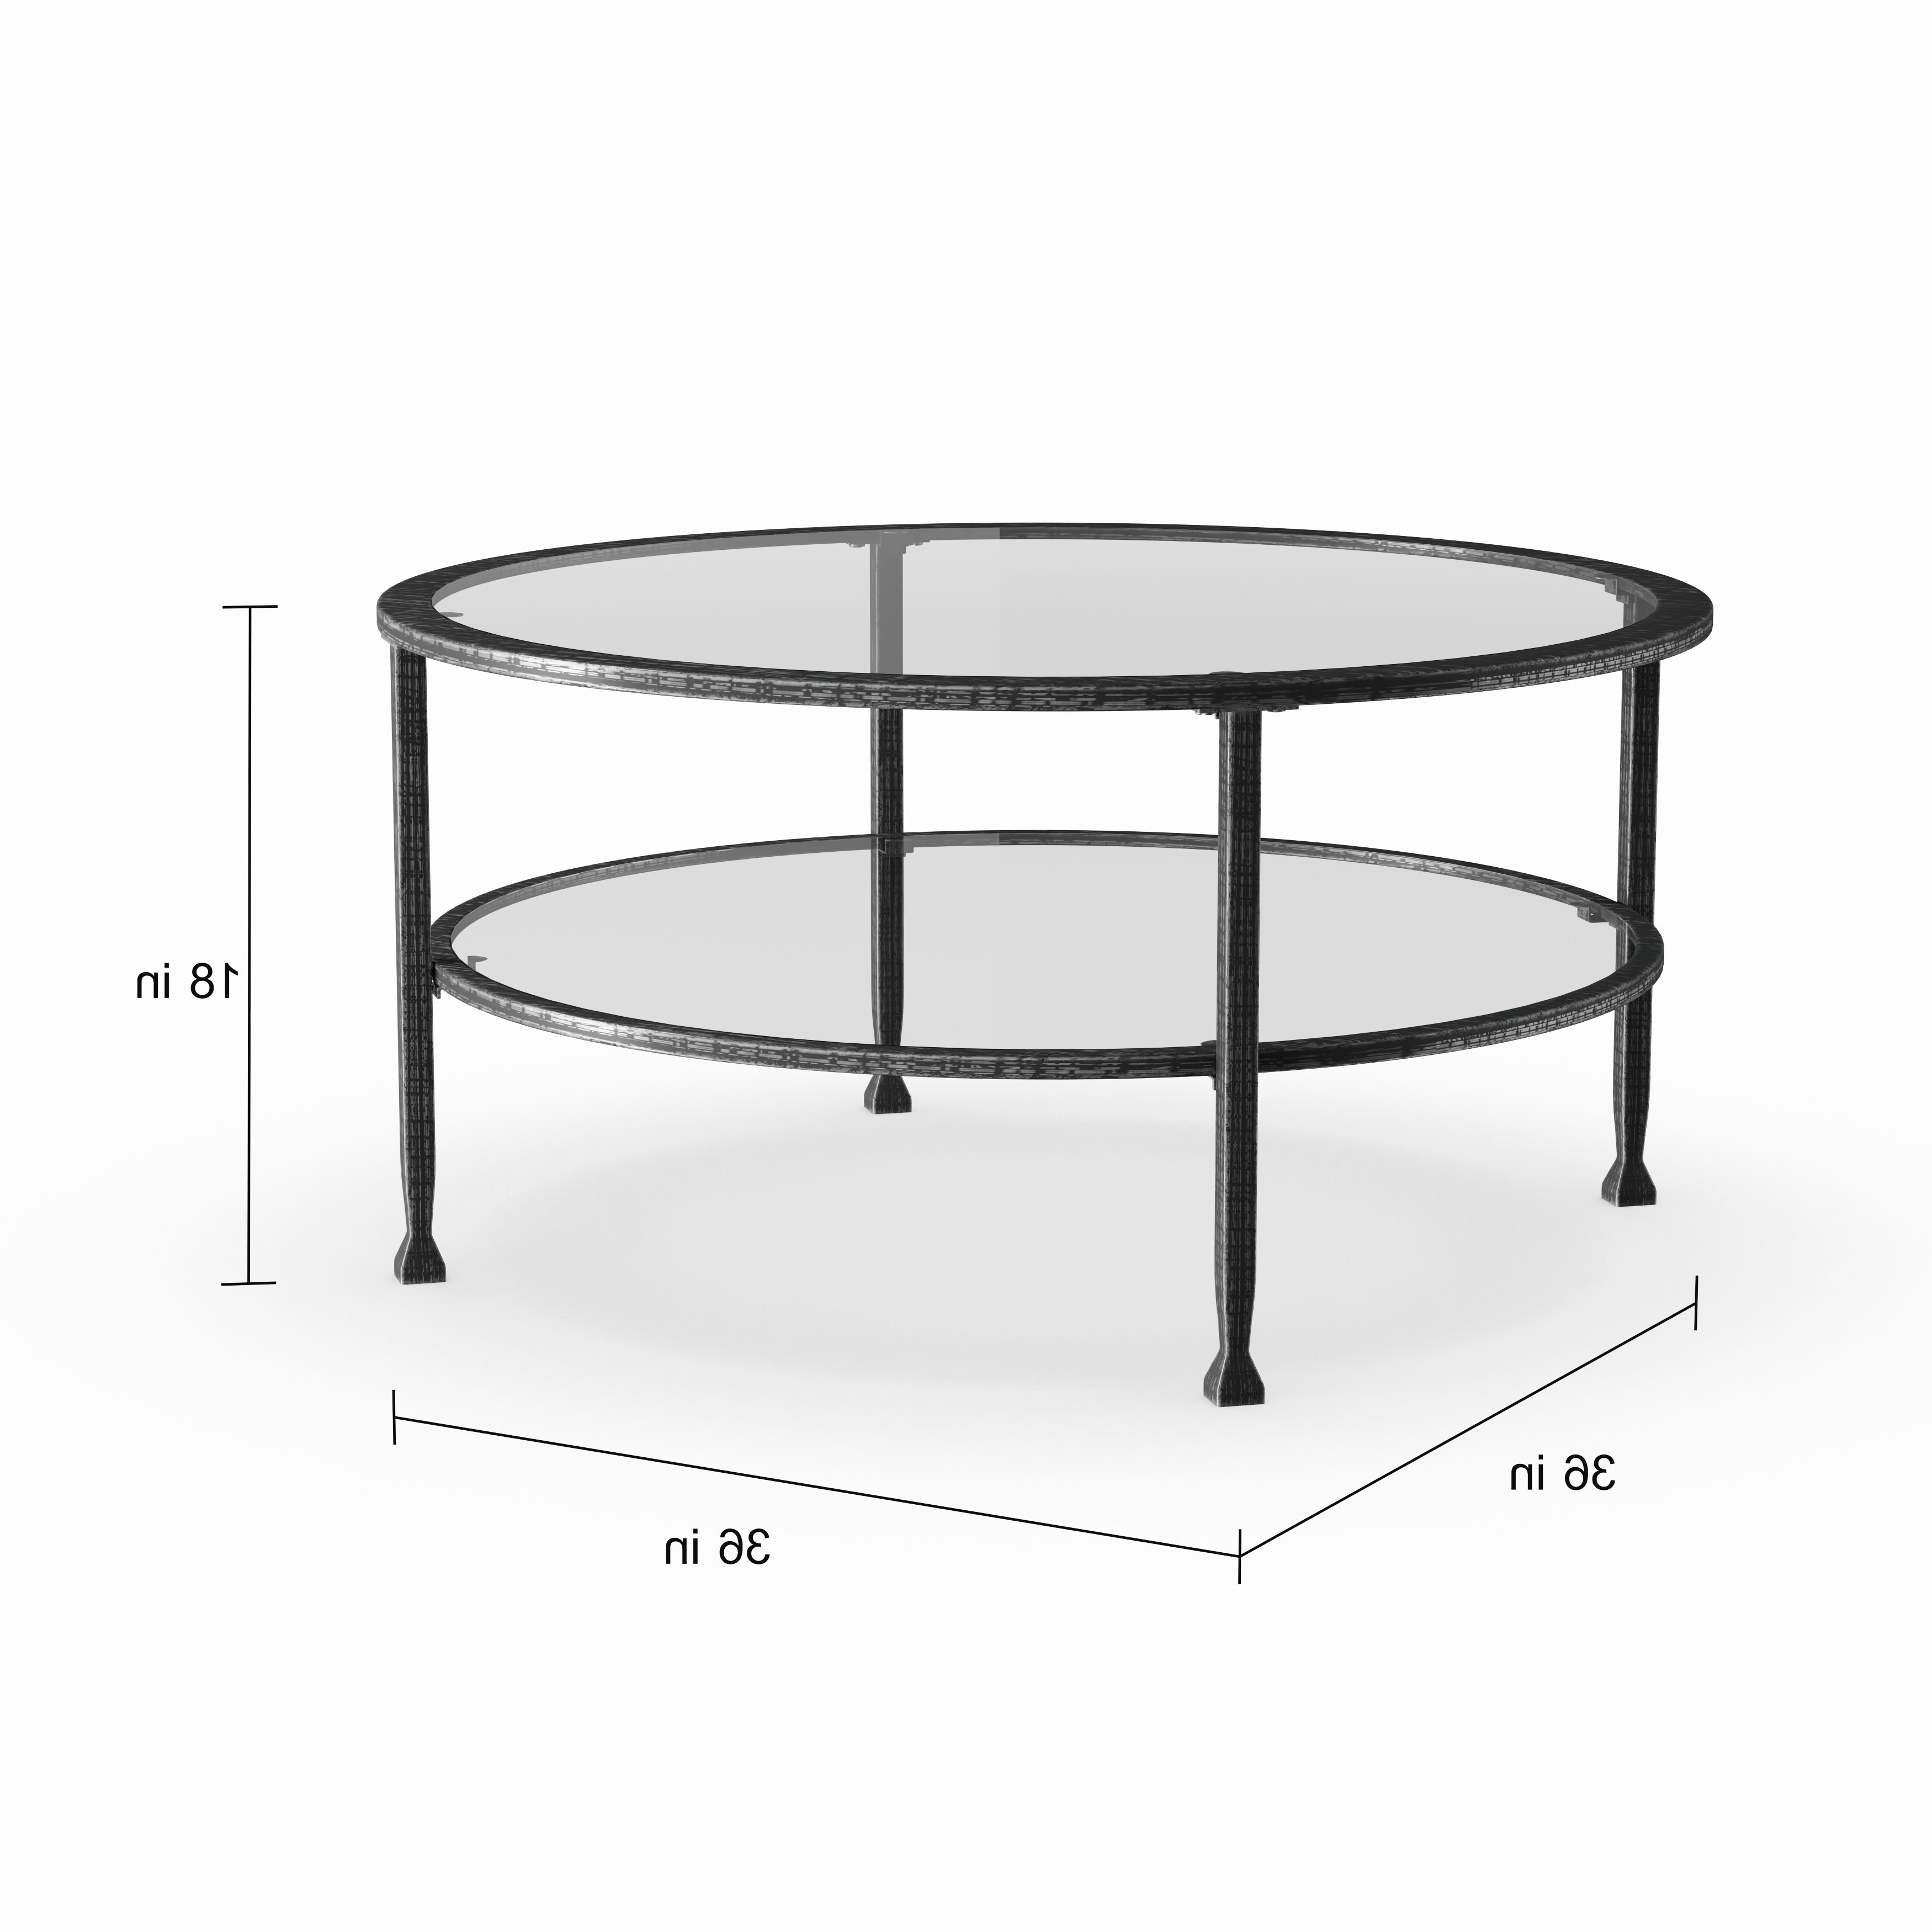 Carbon Loft Glenn Metal/ Glass Round Cocktail Table Regarding 2020 Carbon Loft Heimlich Metal Glass Rectangle Coffee Tables (View 2 of 20)